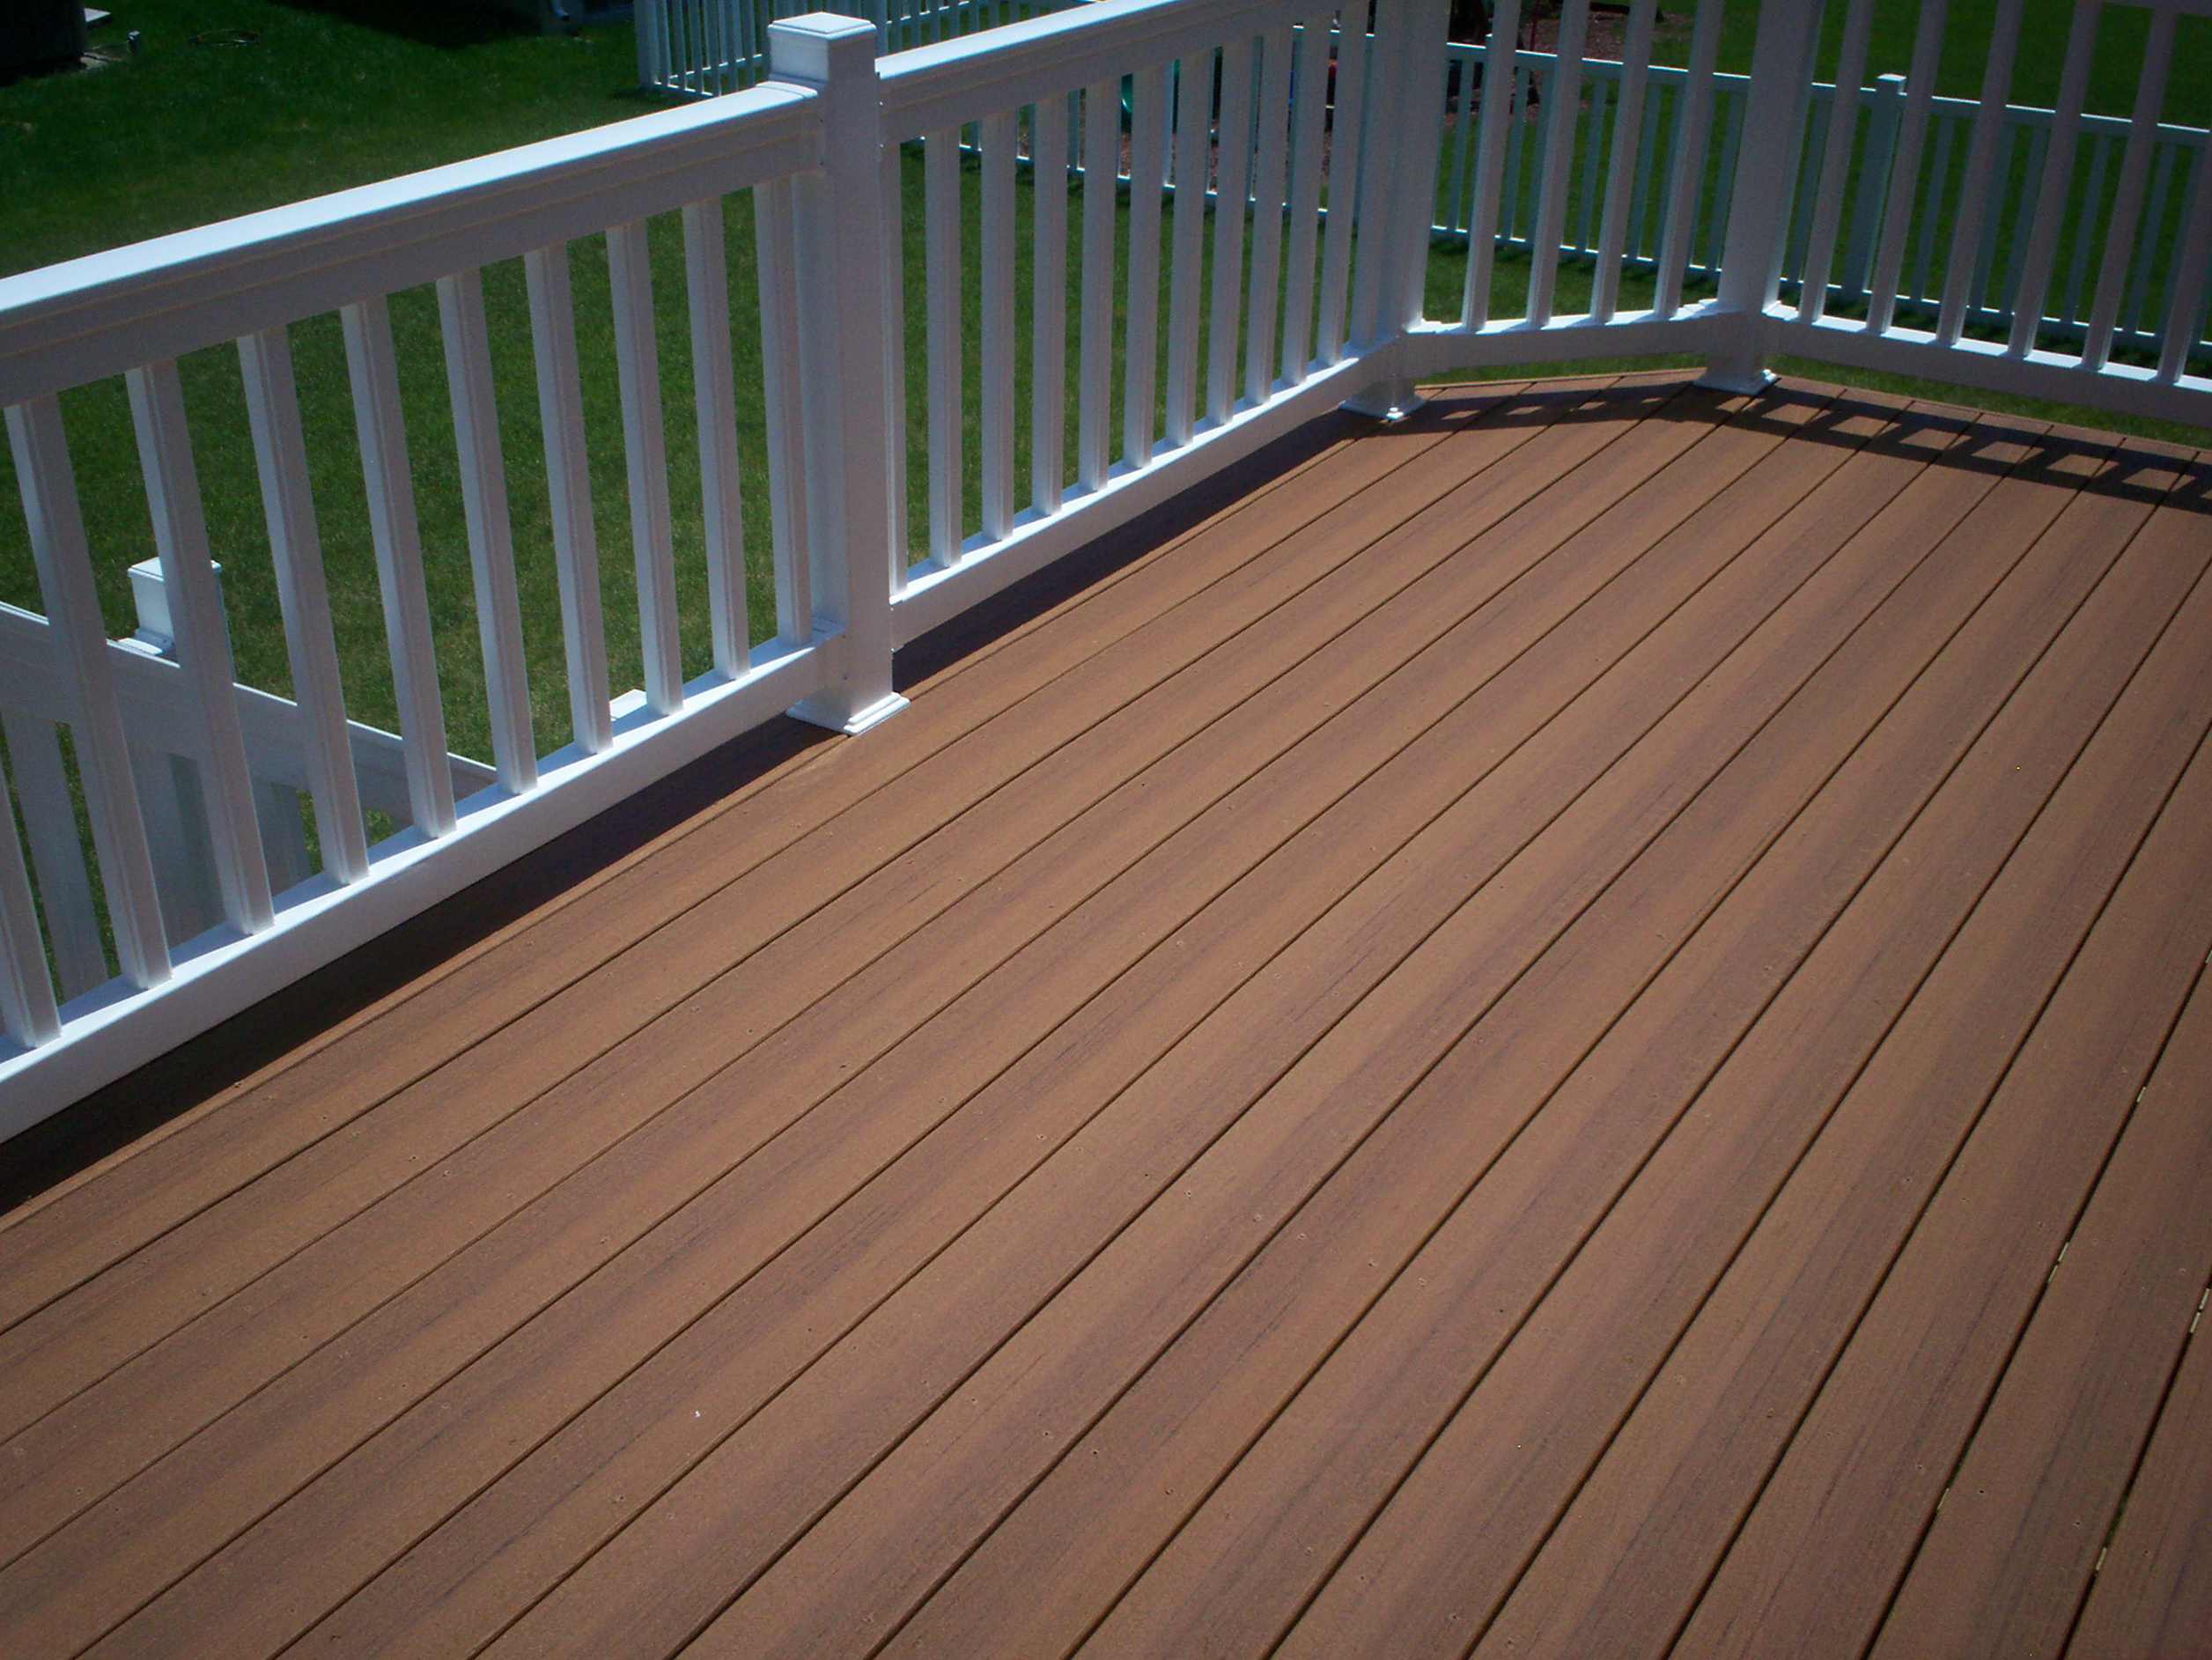 Discount composite decking nh home design ideas for Evergrain decking vs trex